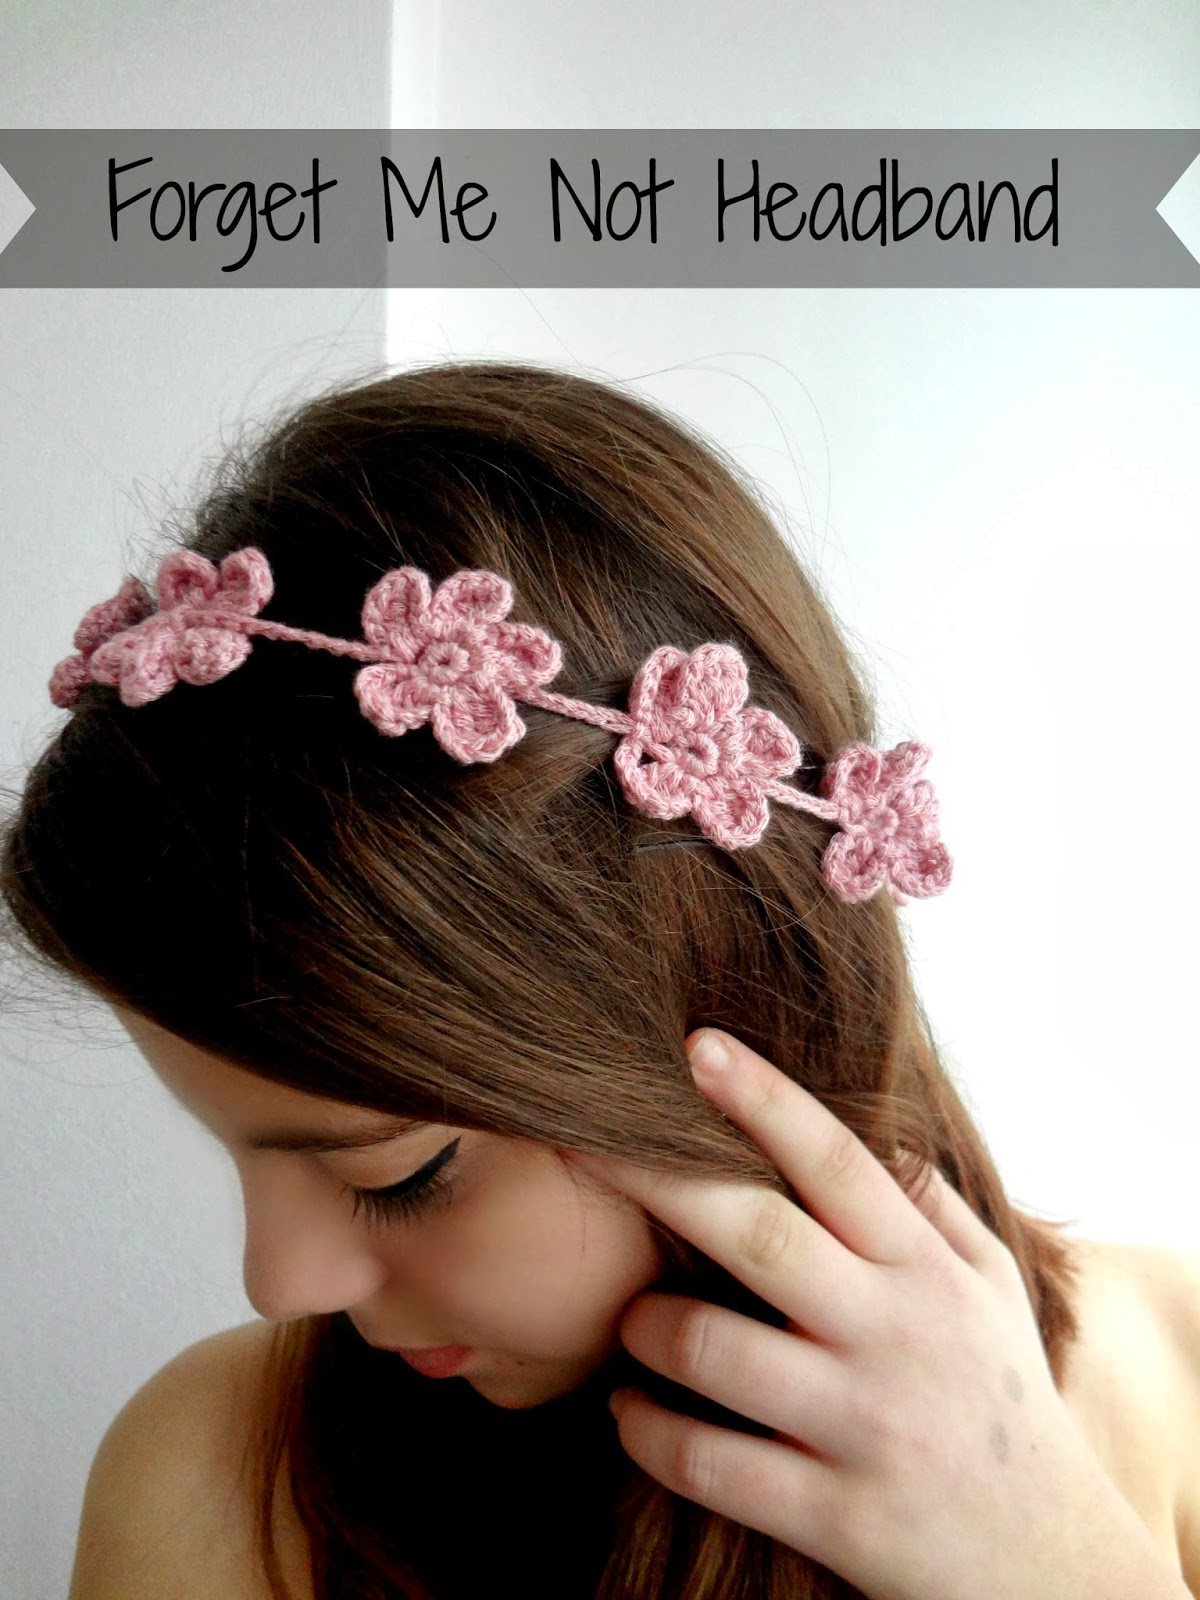 Crochet Headband With Flower Pattern Tutorial : Little Treasures: Forget Me Not Headband - free tutorial